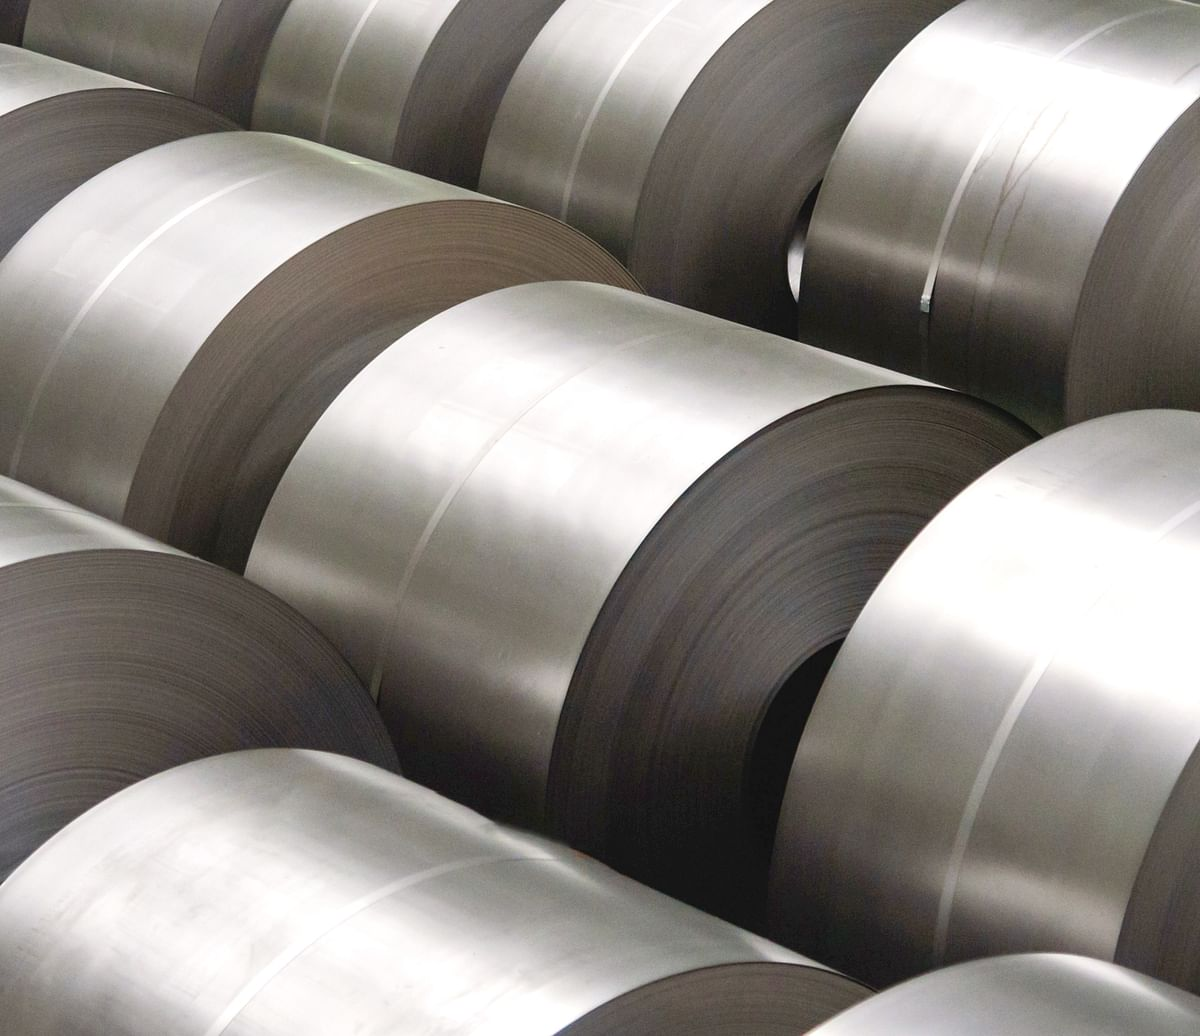 Malaysia Imposes AD Duty on CR Stainless Steel Imports